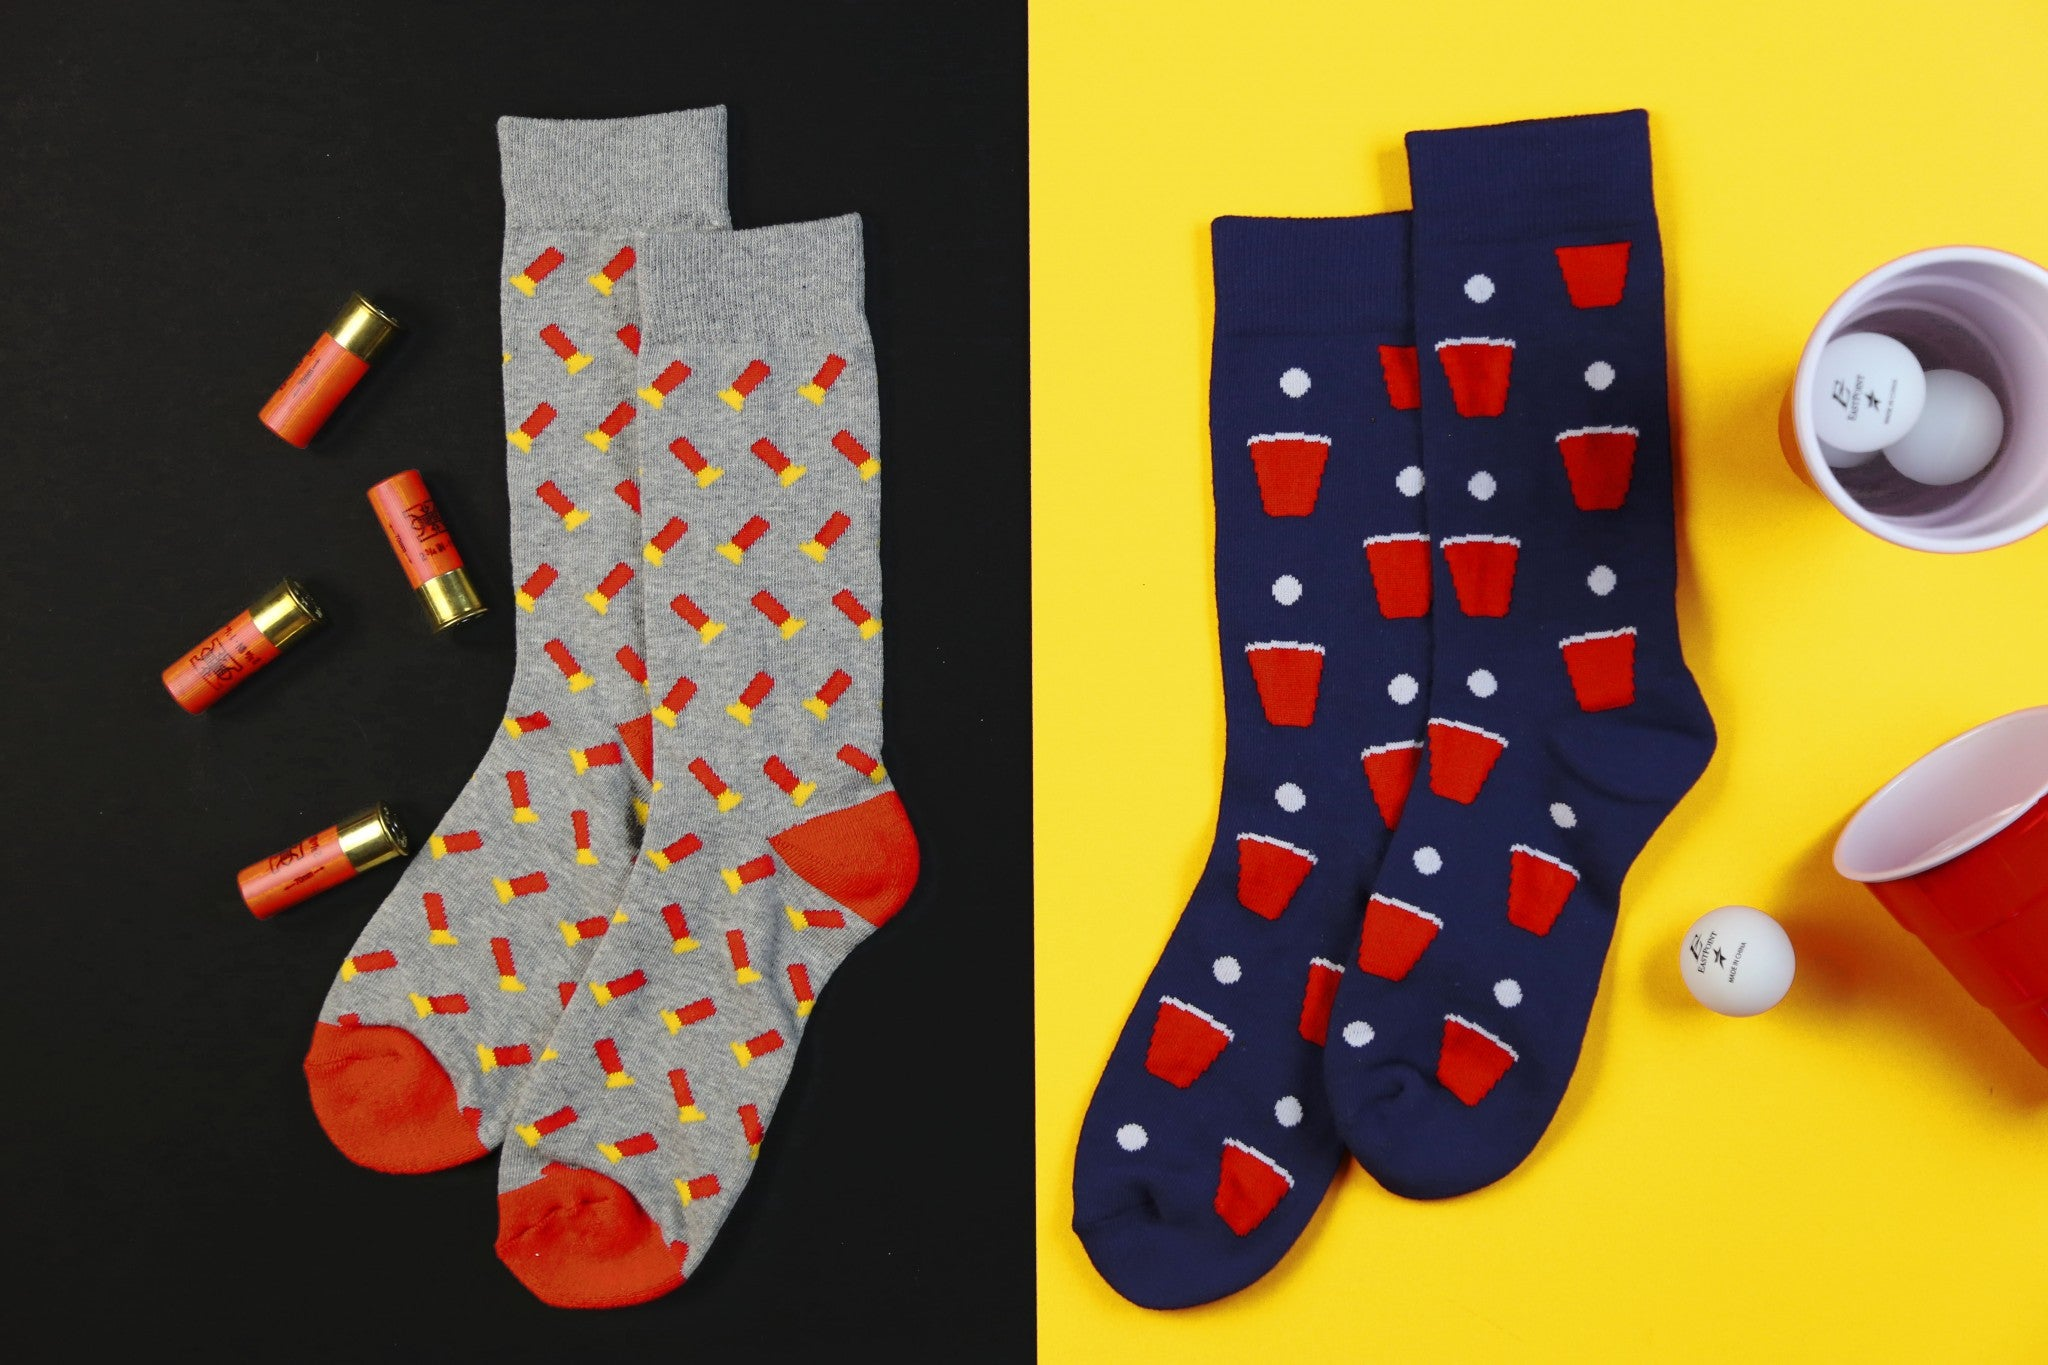 New Shotgun Shell & Beer Pong Socks